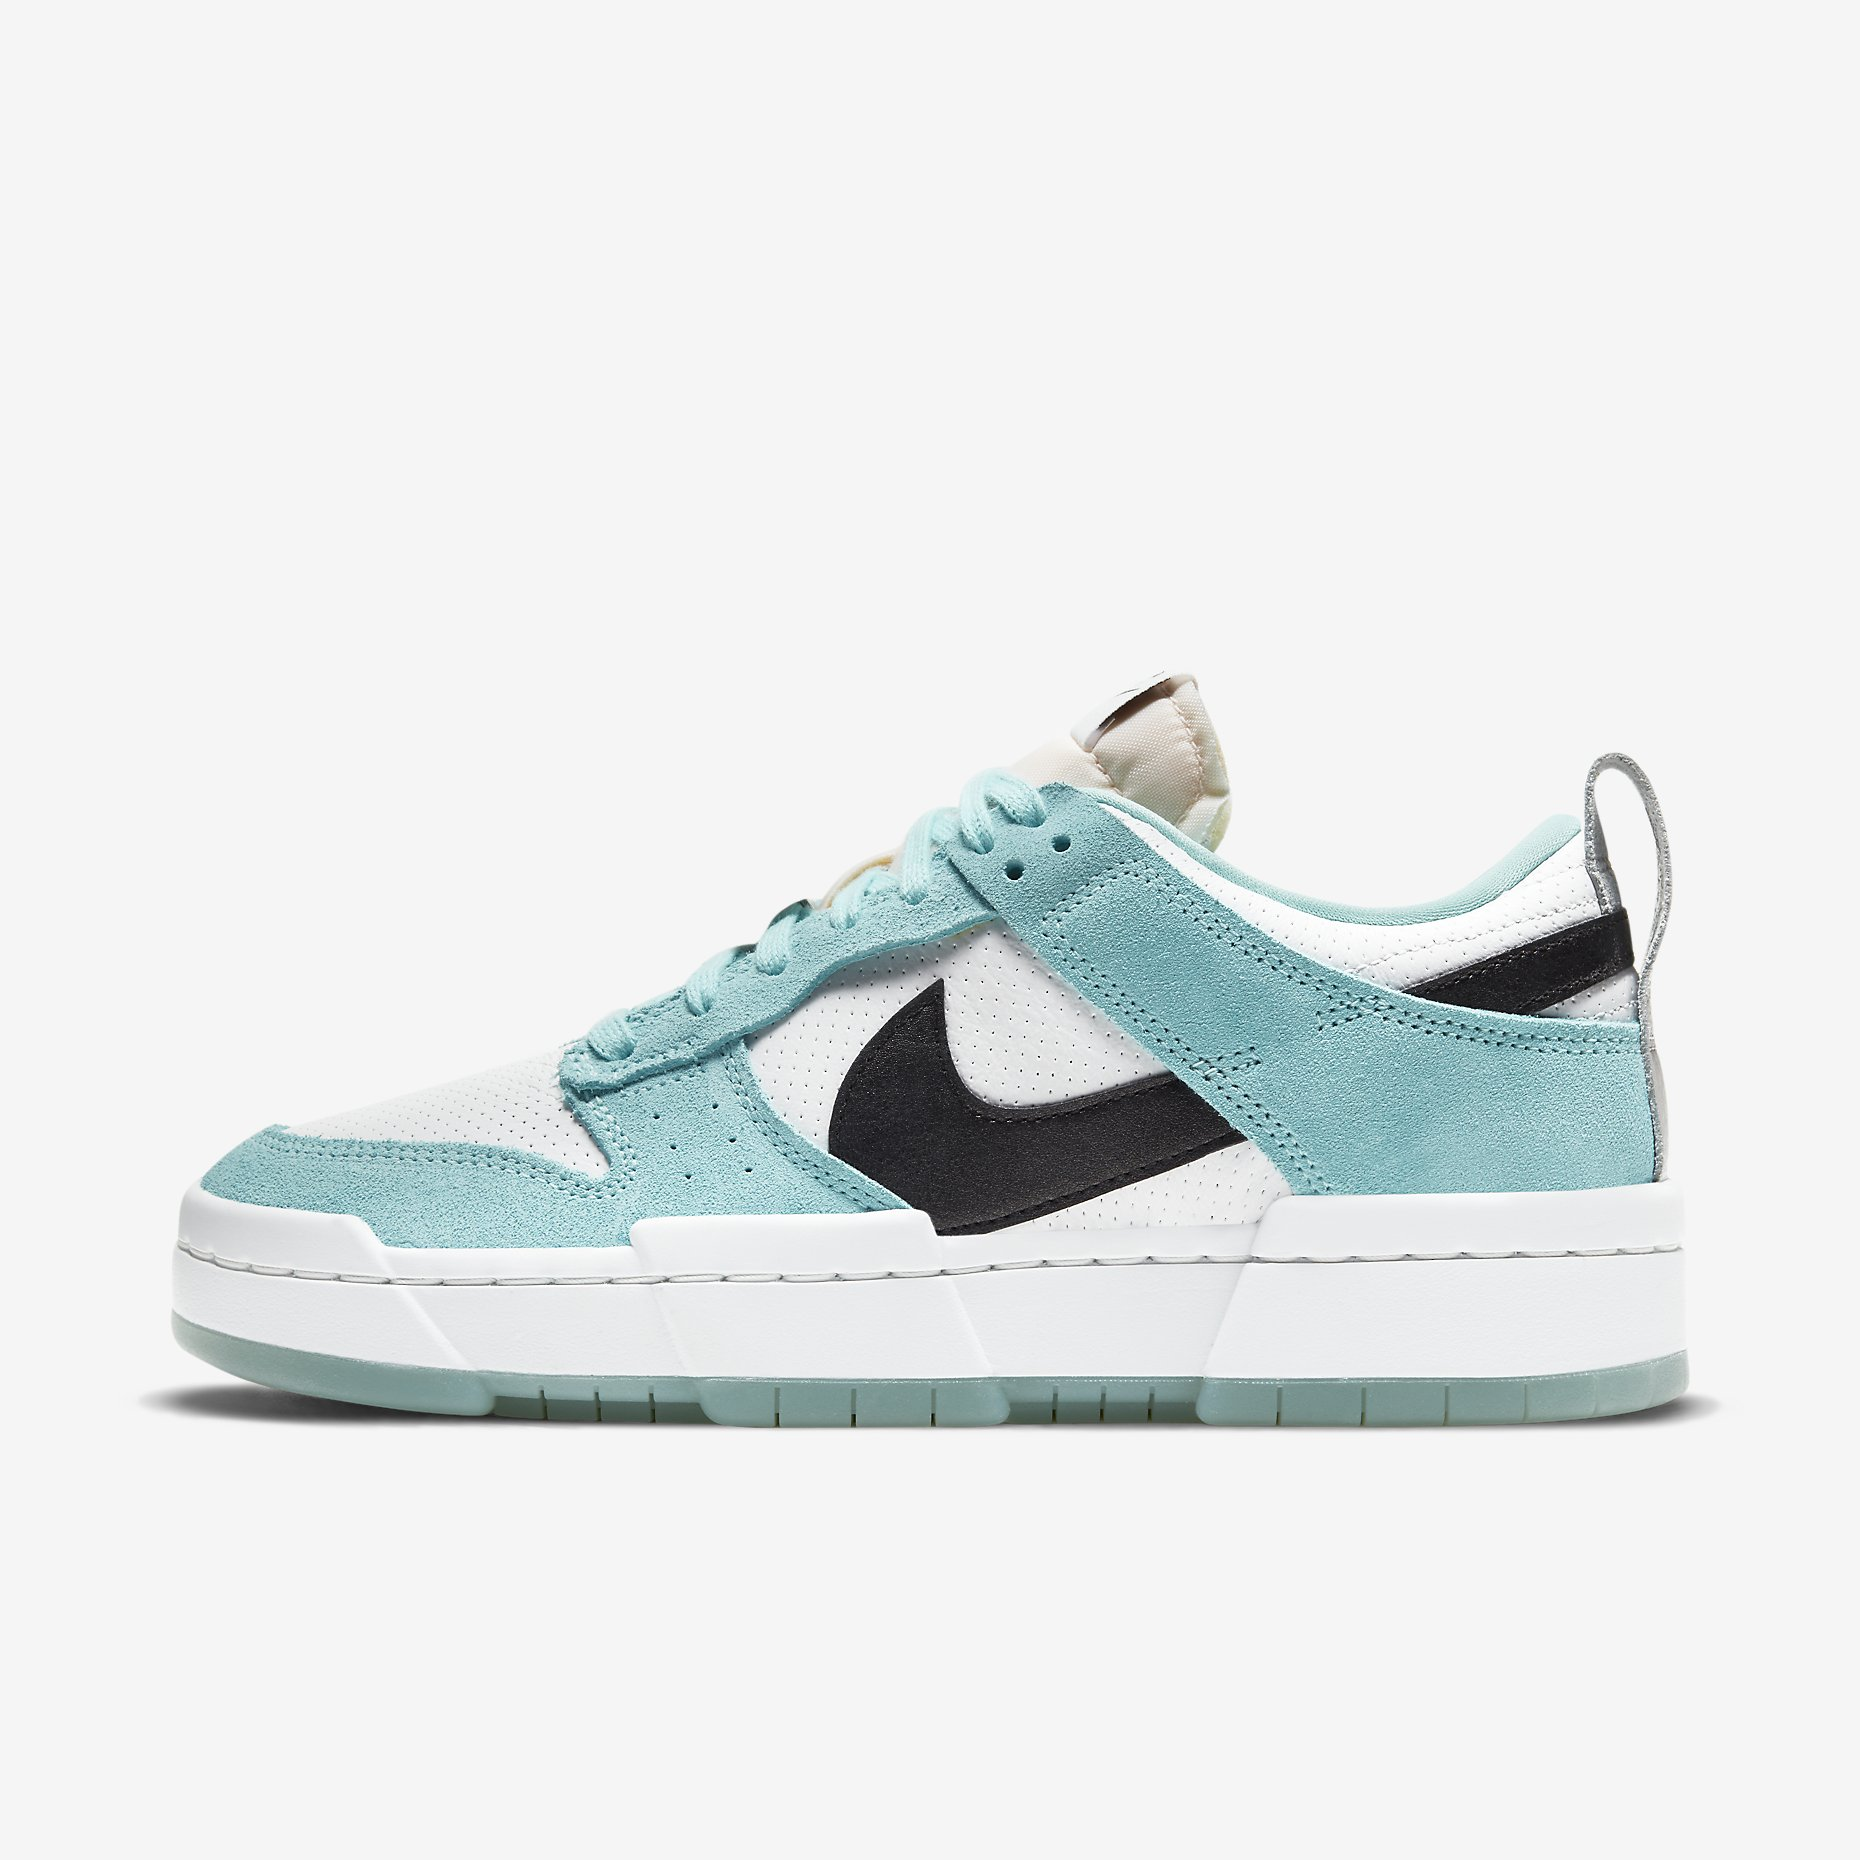 Wmns Nike Dunk Low Disrupt 'Copa'}